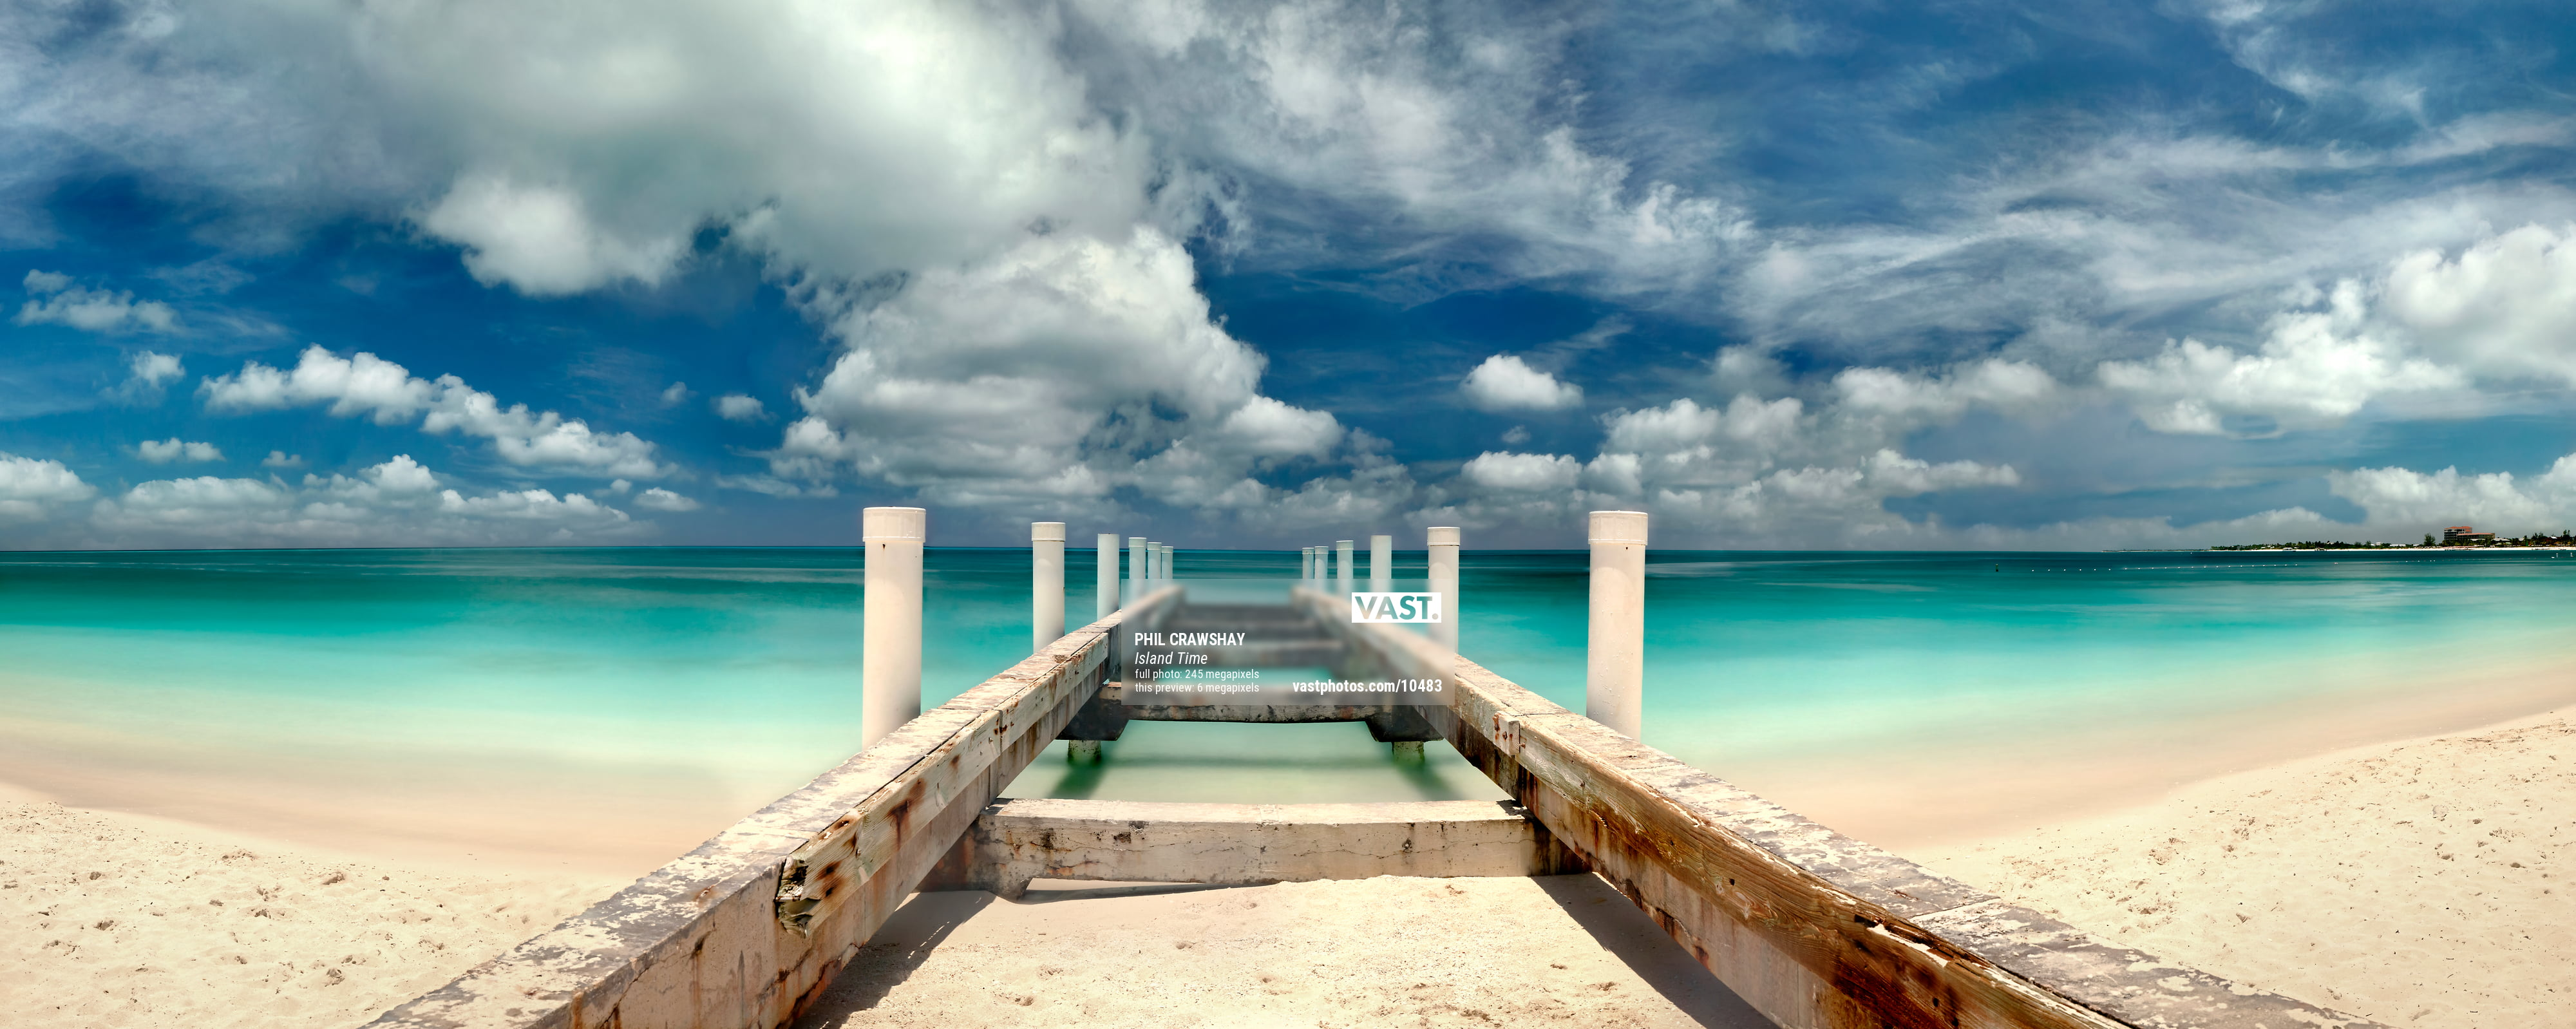 High Resolution Beach Pier Photos Vast